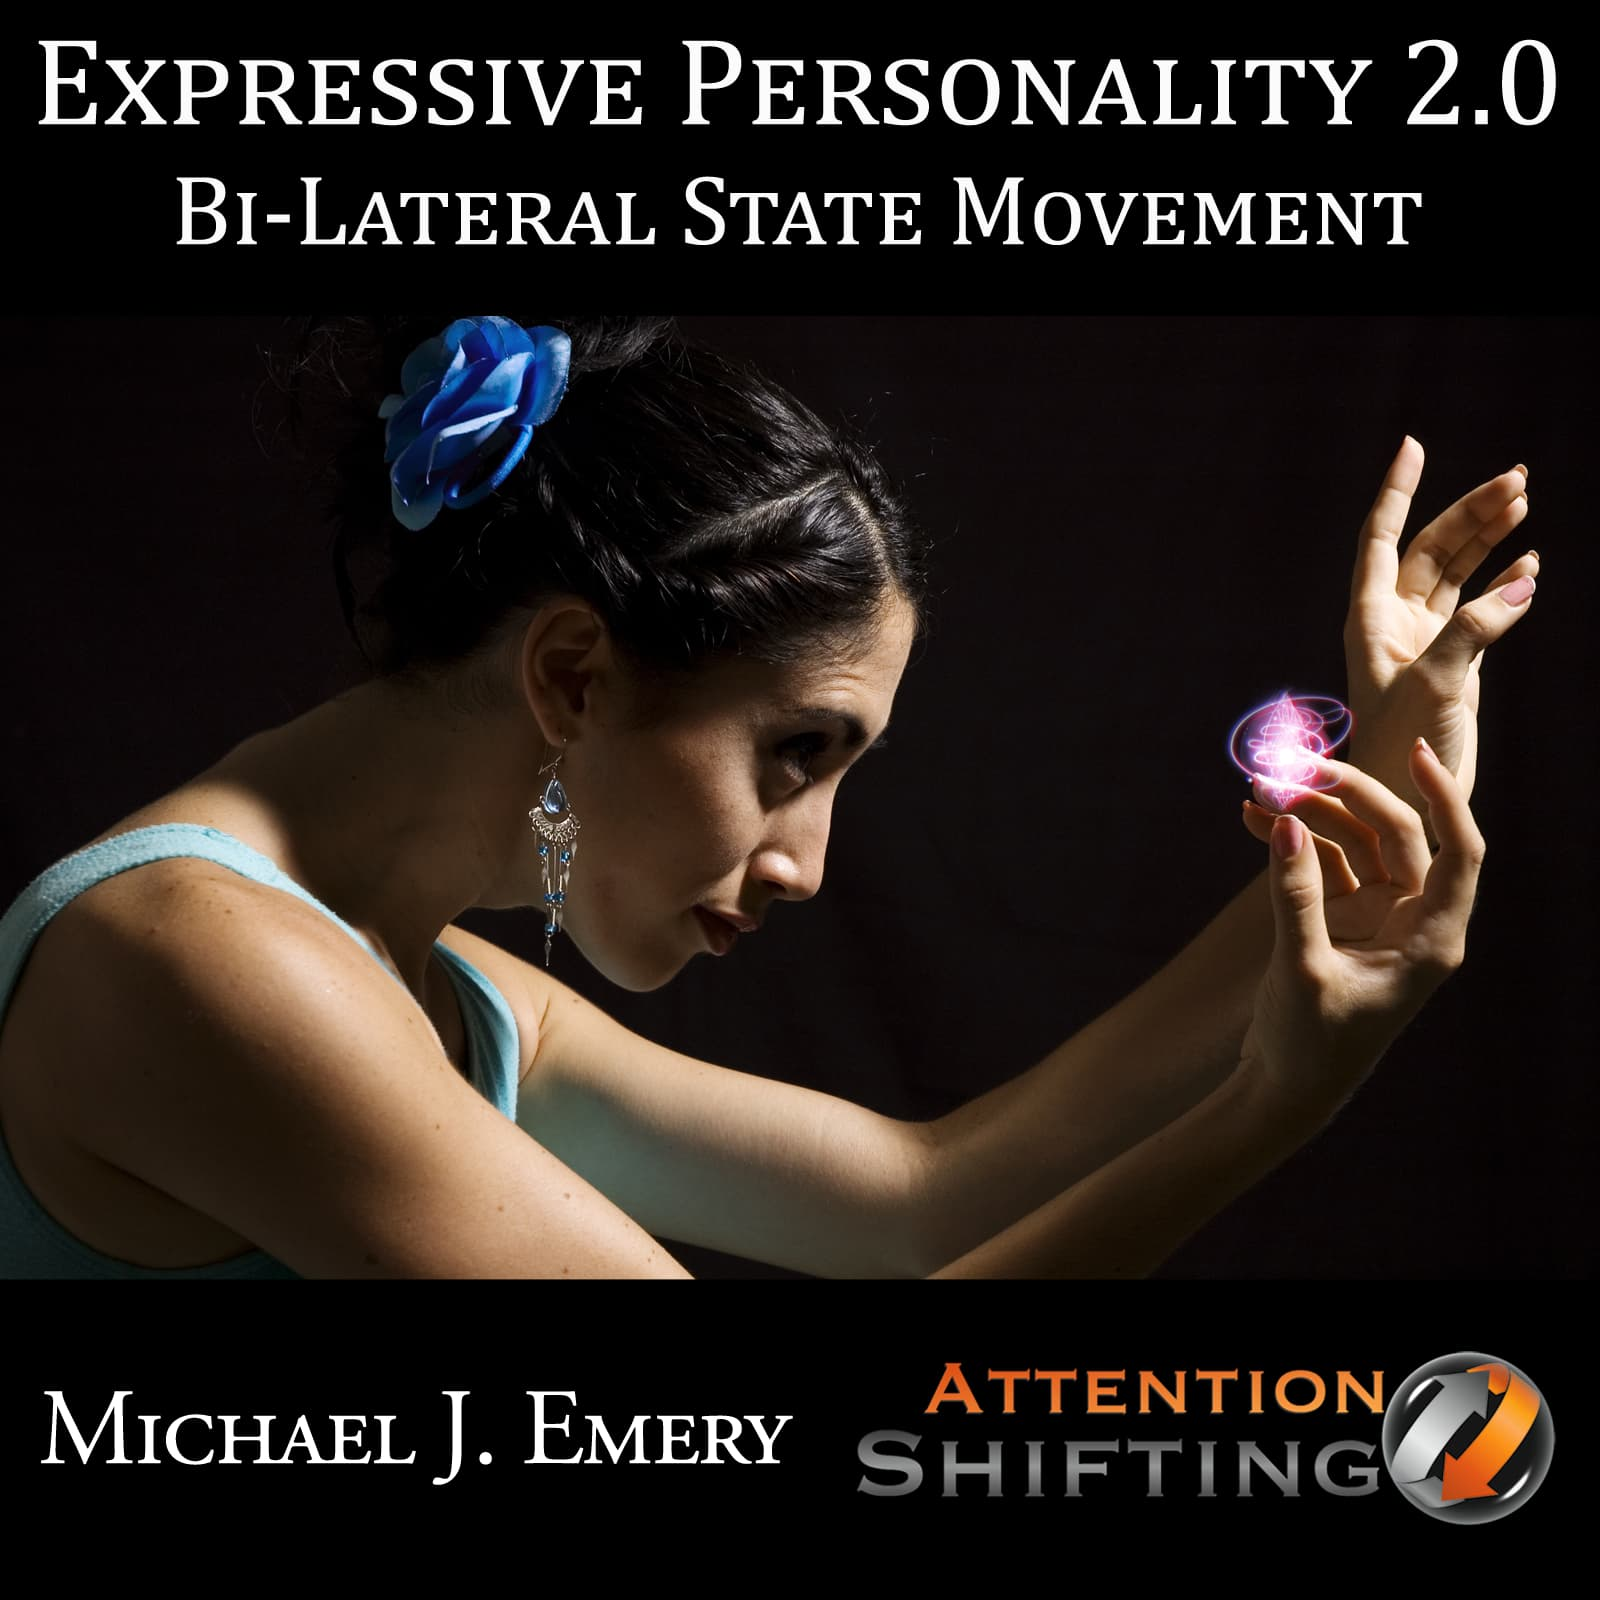 Expressive-Personality-2.0